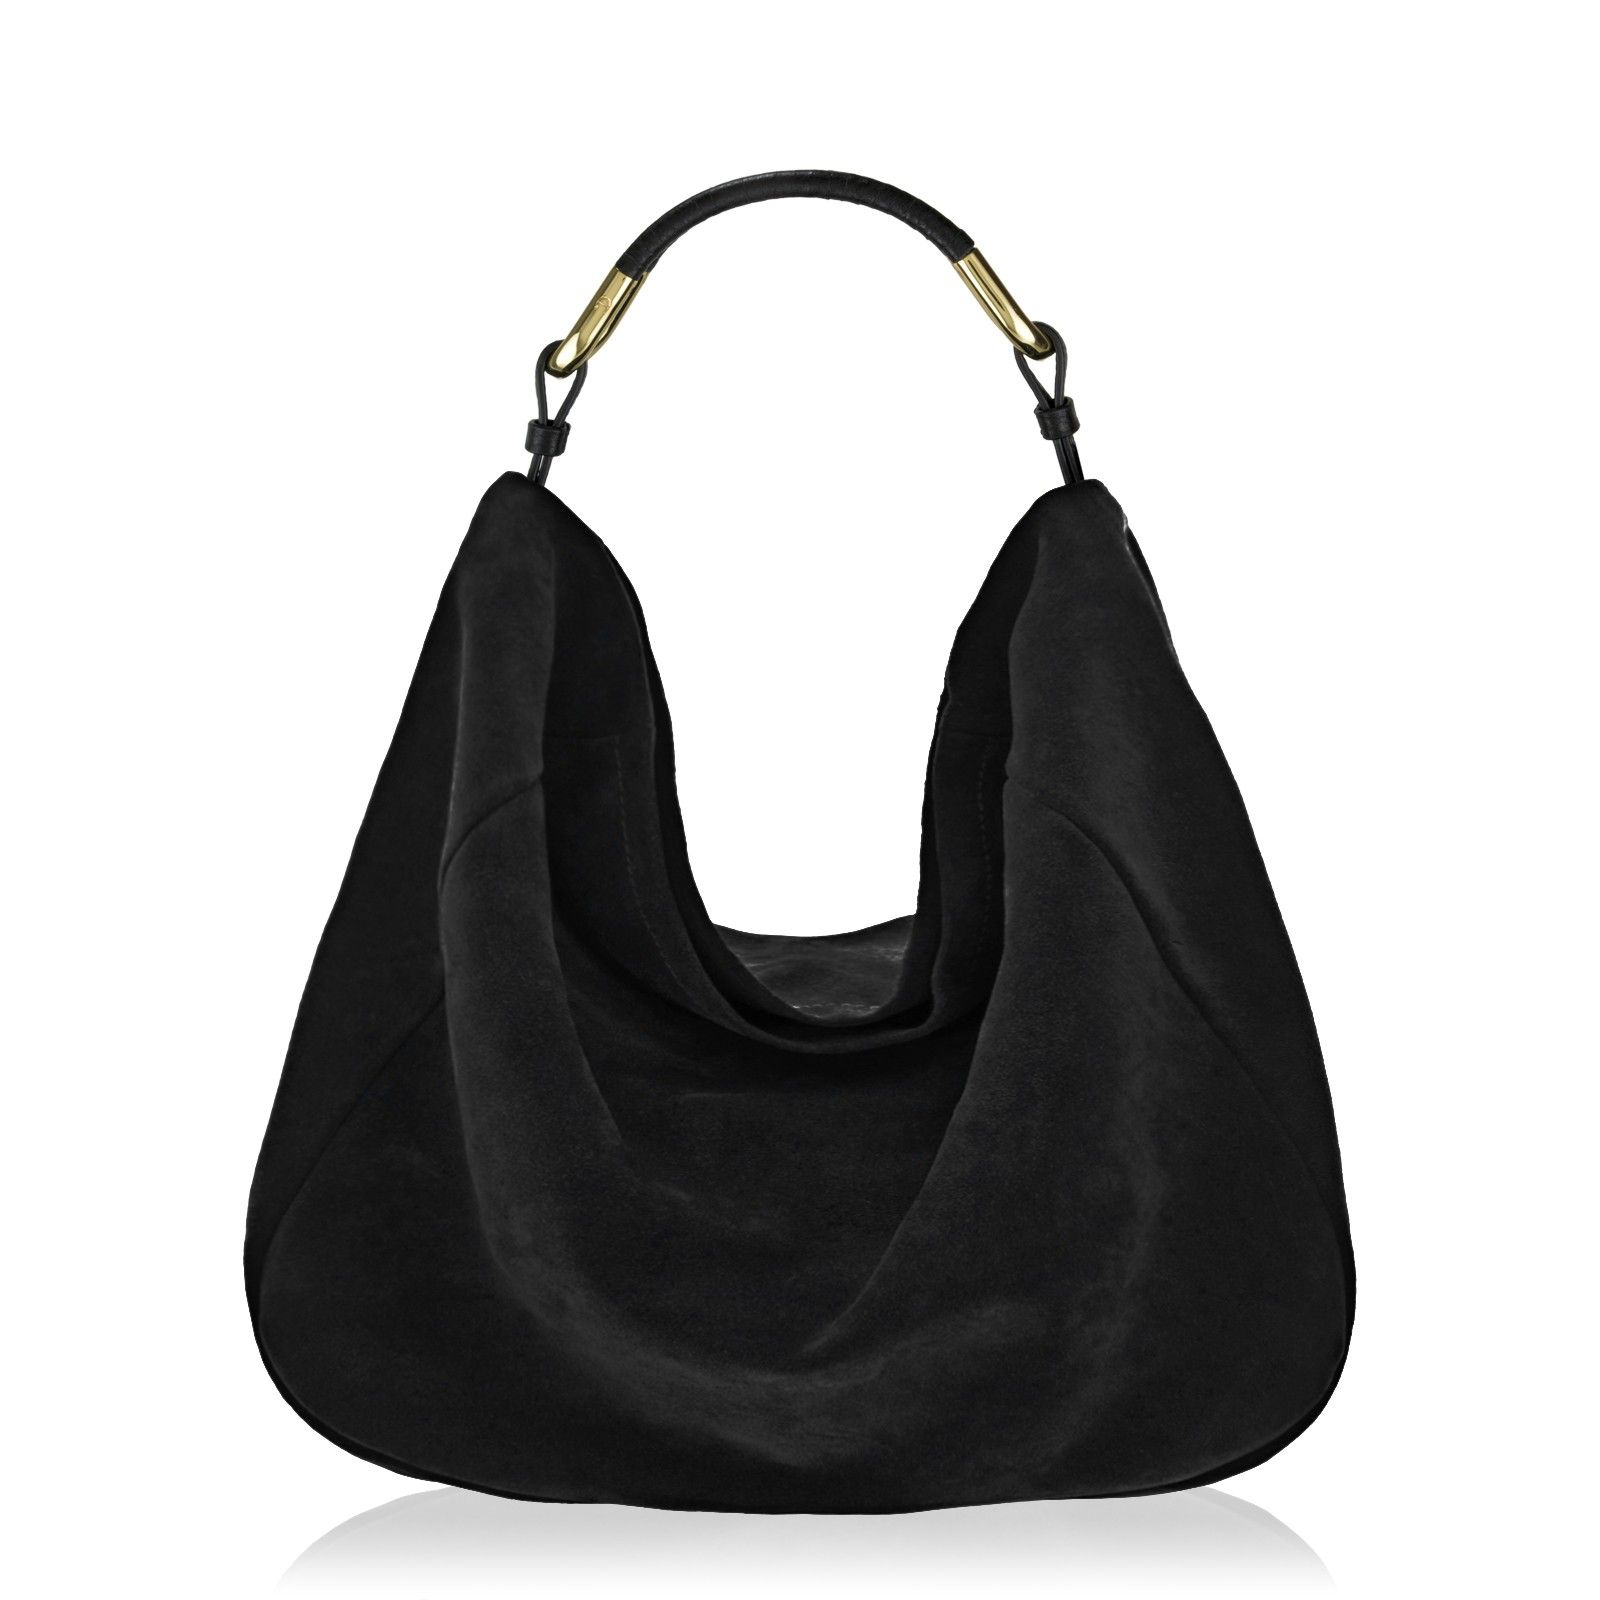 Moda Hobo by Etienne Aigner | Bags | Pinterest | Etienne aigner ...